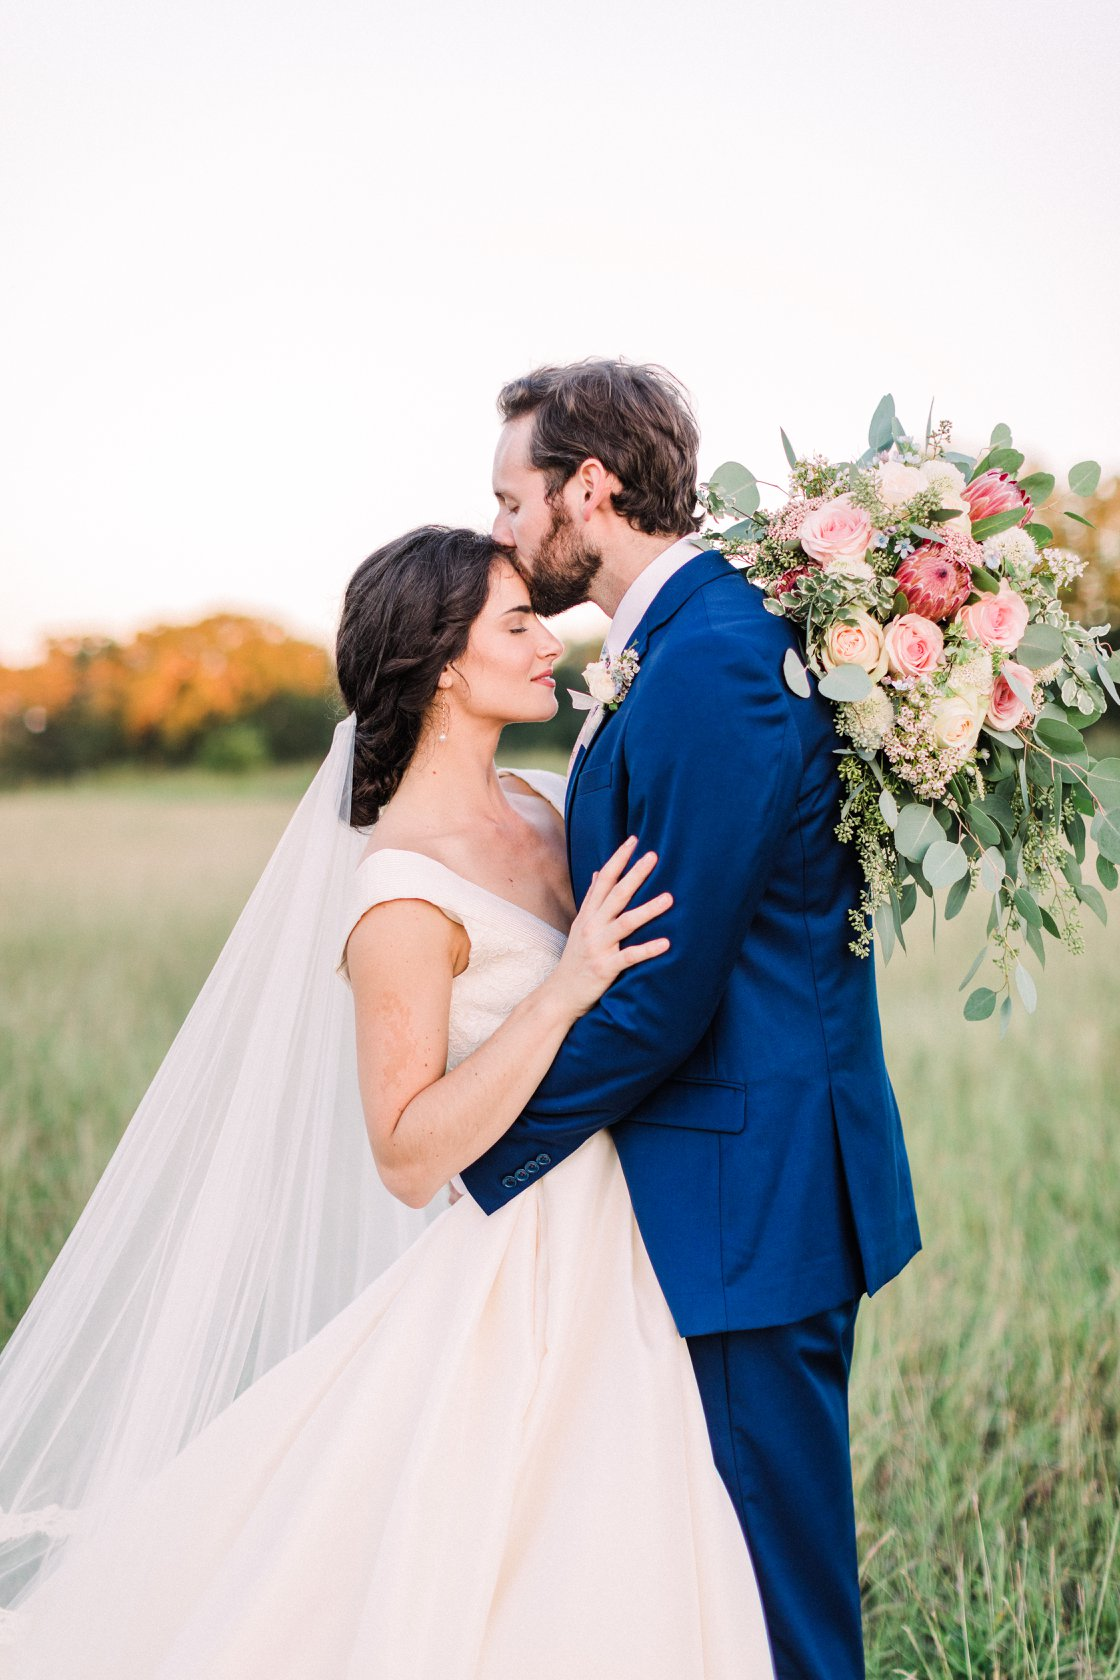 Bride and Groom Sunset by Bonner Rhae at The Prairie in Round Top wedding venue epoch co texas wedding planners.jpg